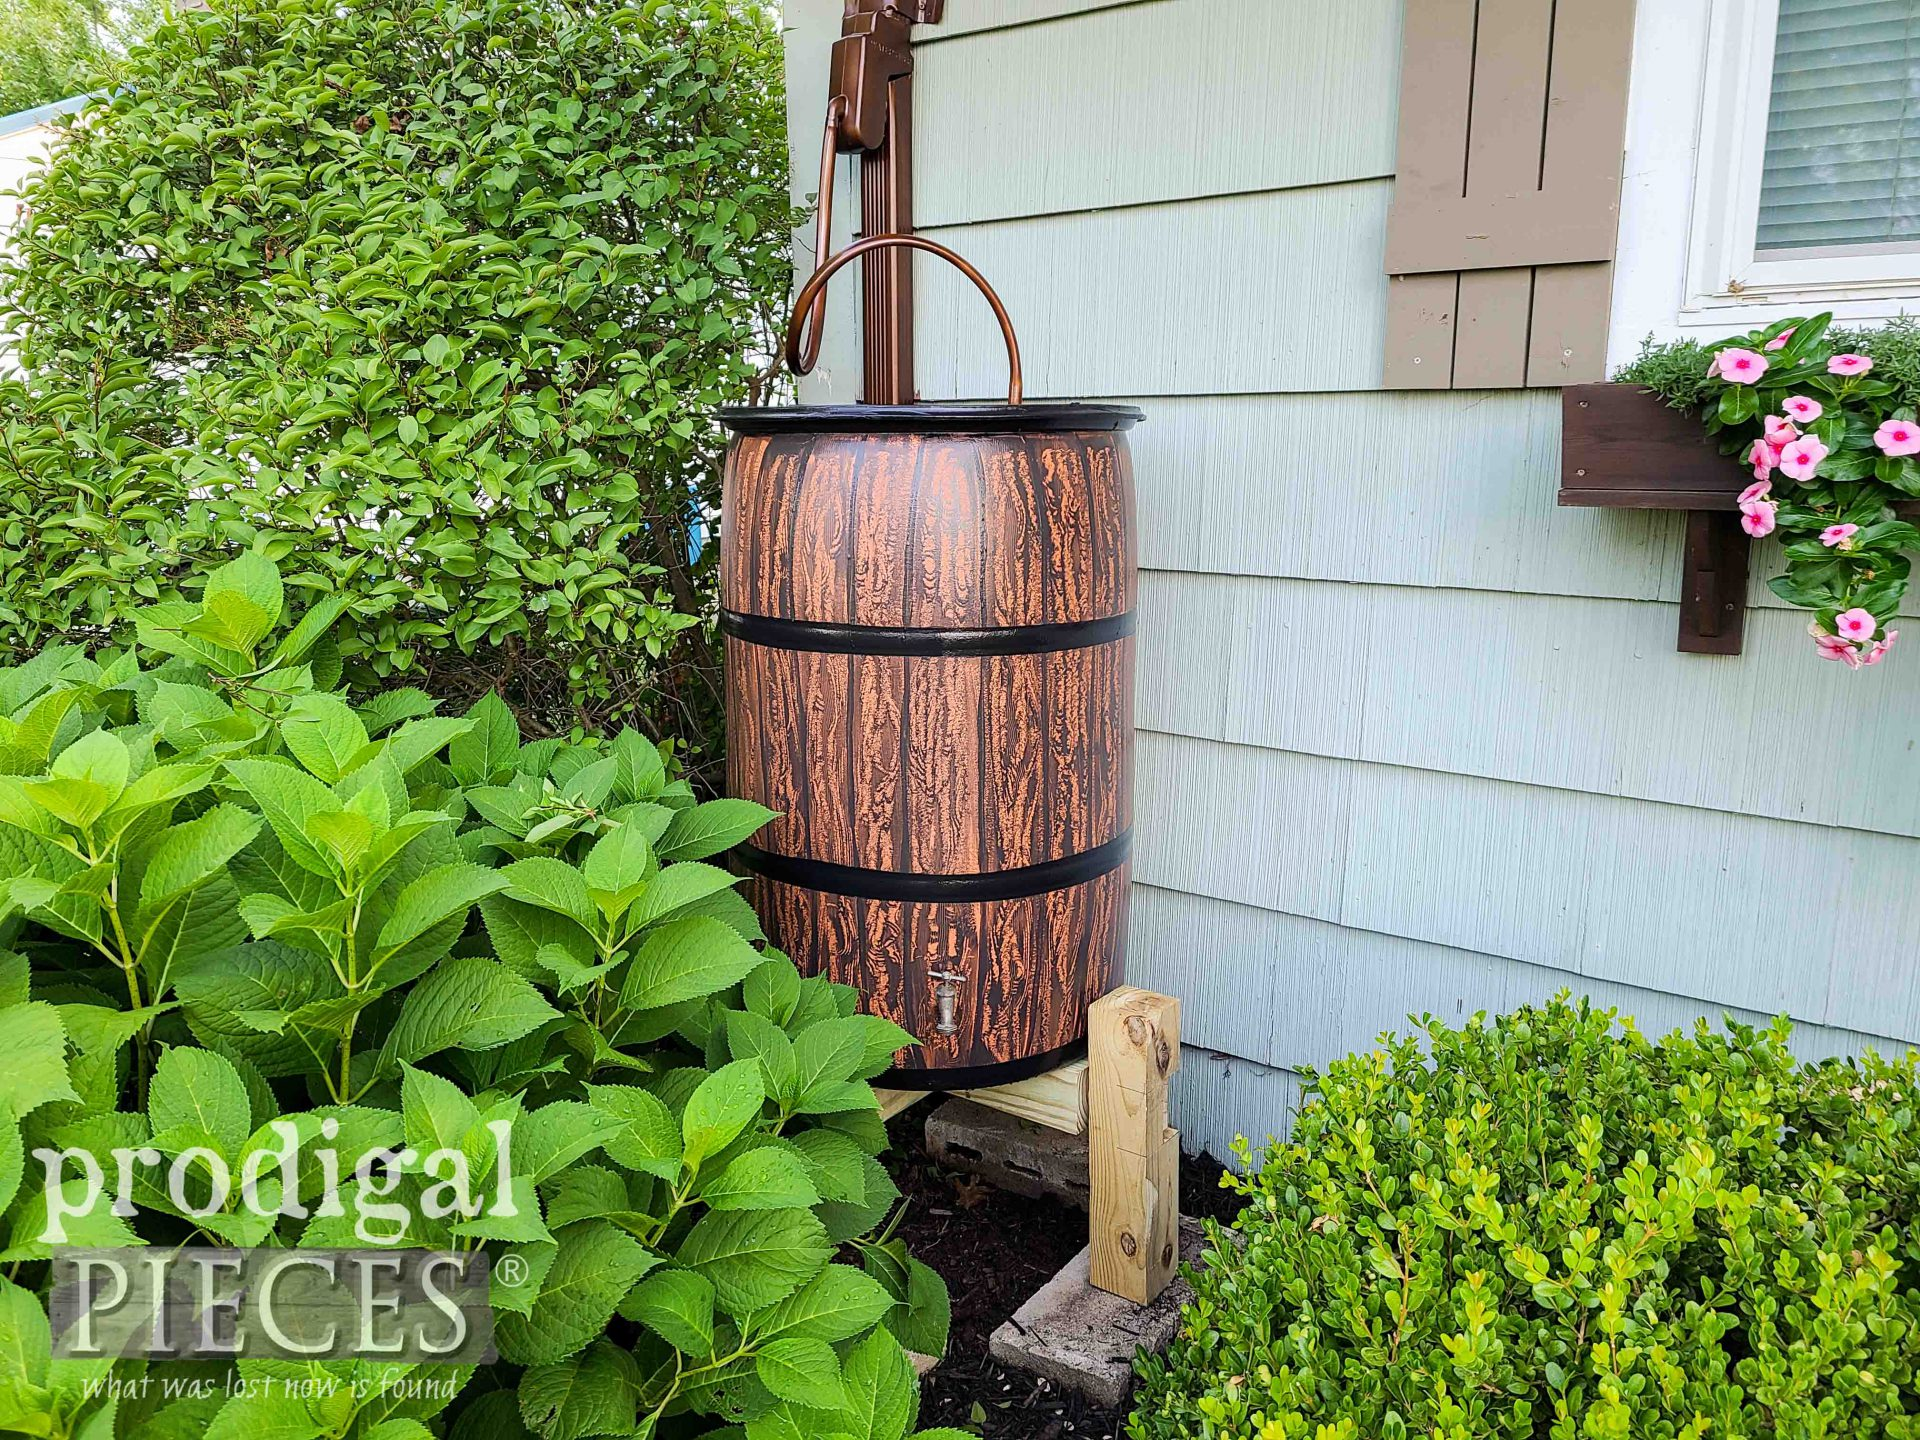 Handmade Rain Barrel from Upcycled Drum by Larissa of Prodigal Pieces | prodigalpieces.com #prodigalpieces #diy #garden #selfsufficient #homesteading